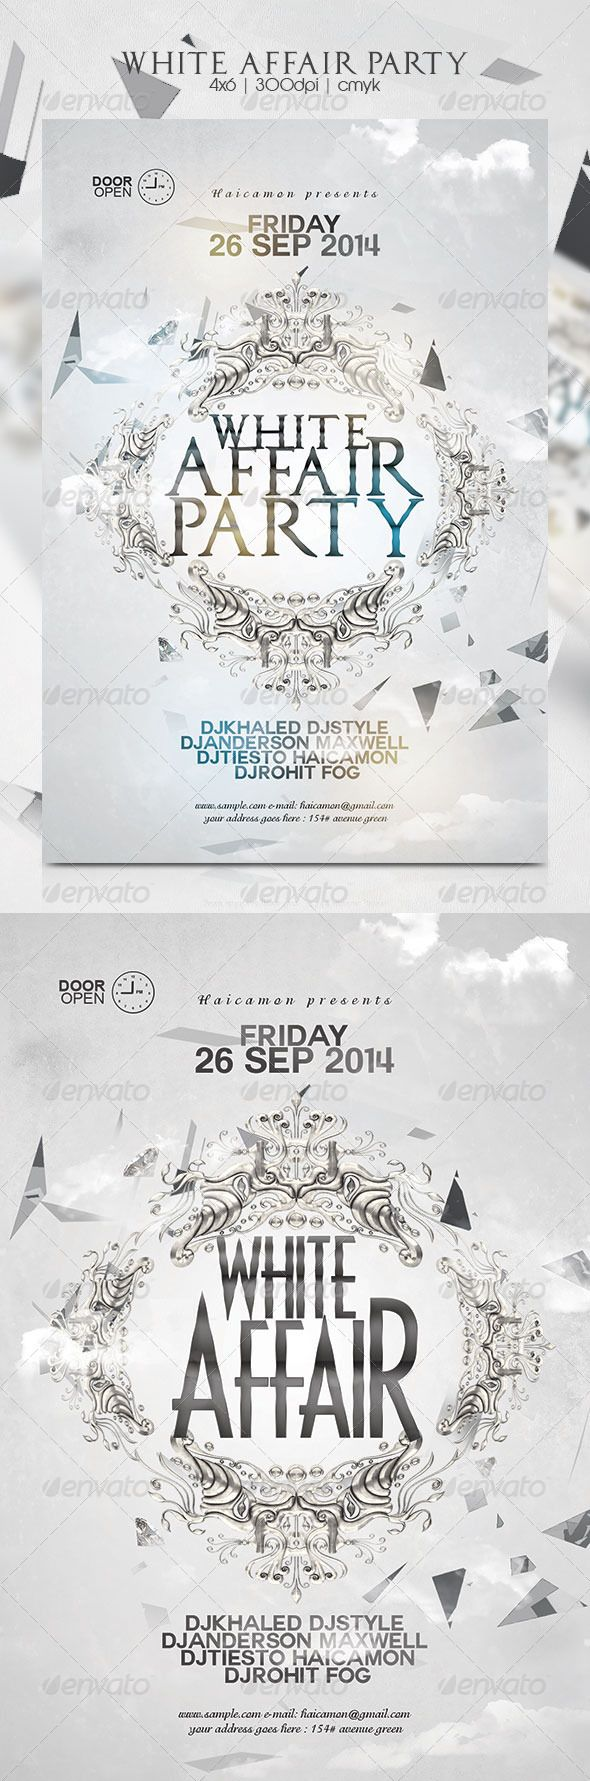 White Affair Party Flyer | Party flyer, Flyer template and Template